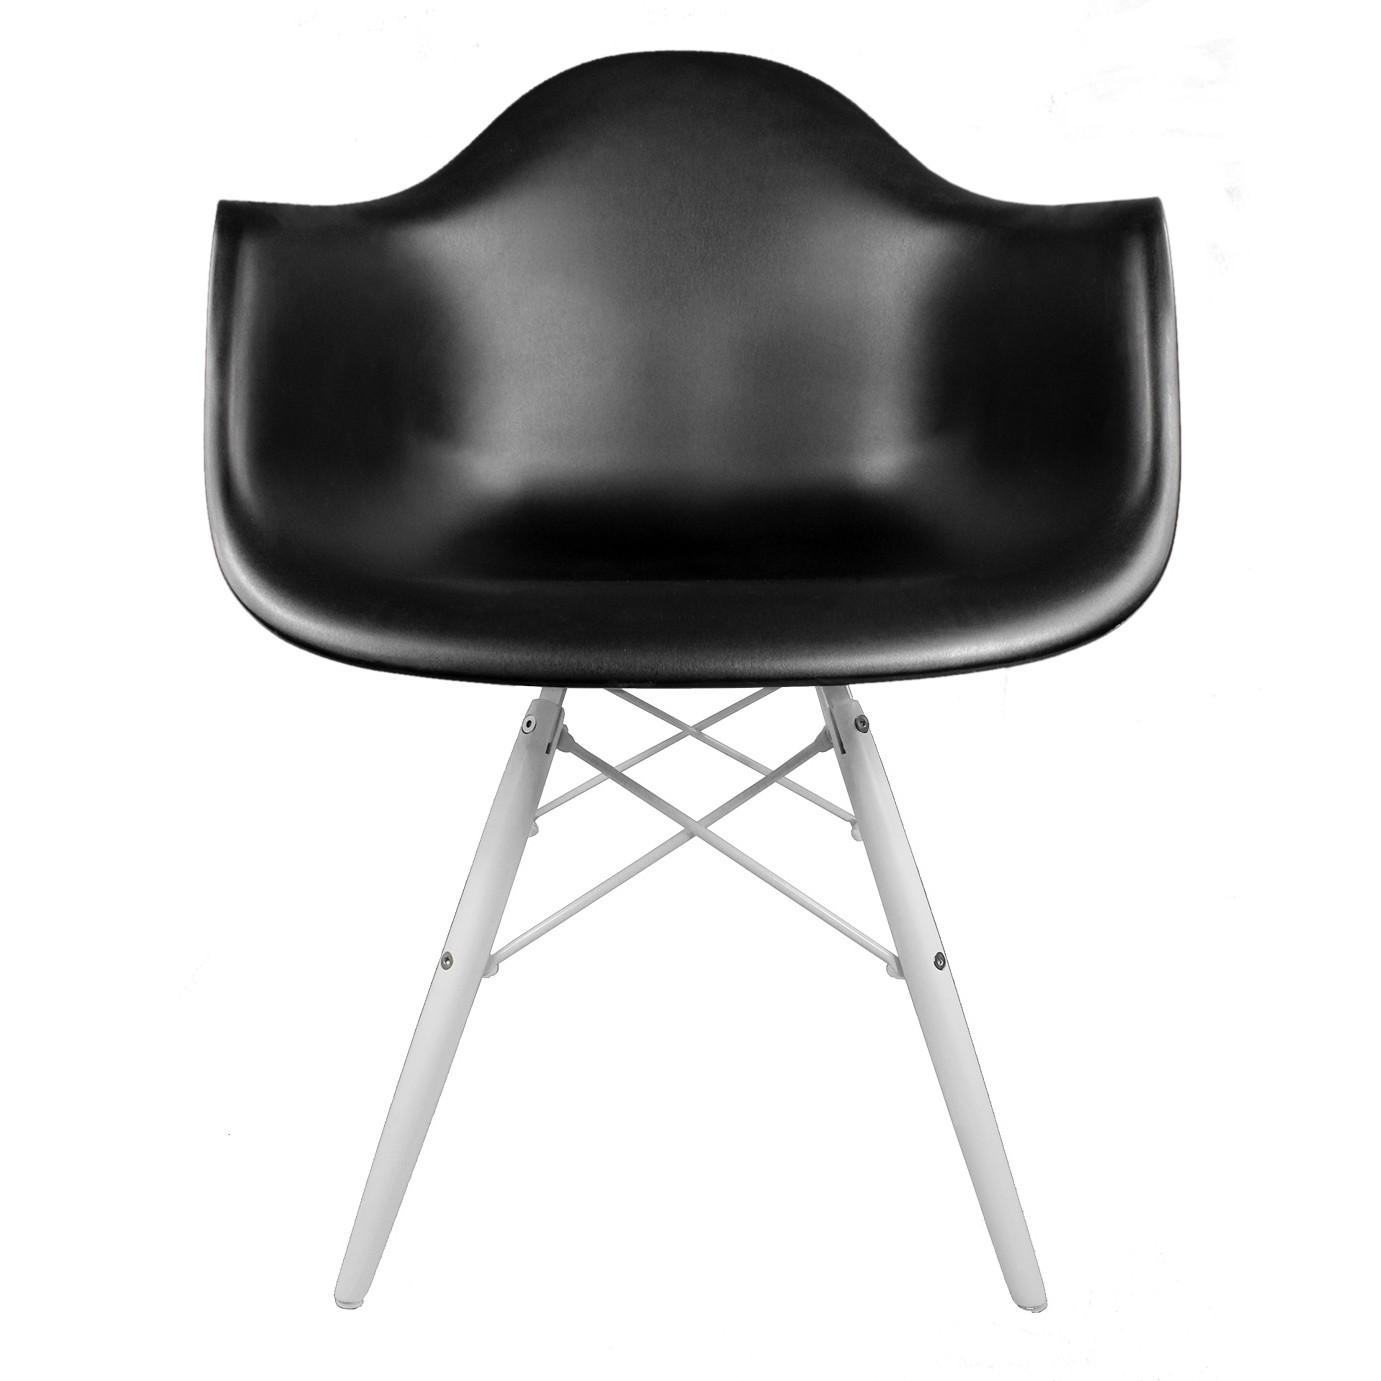 Display Gallery Item 1  Display Gallery Item 2  Eames Style DAW Molded Black Plastic Accent Arm Chair with White  . Eames Daw Chair Price. Home Design Ideas